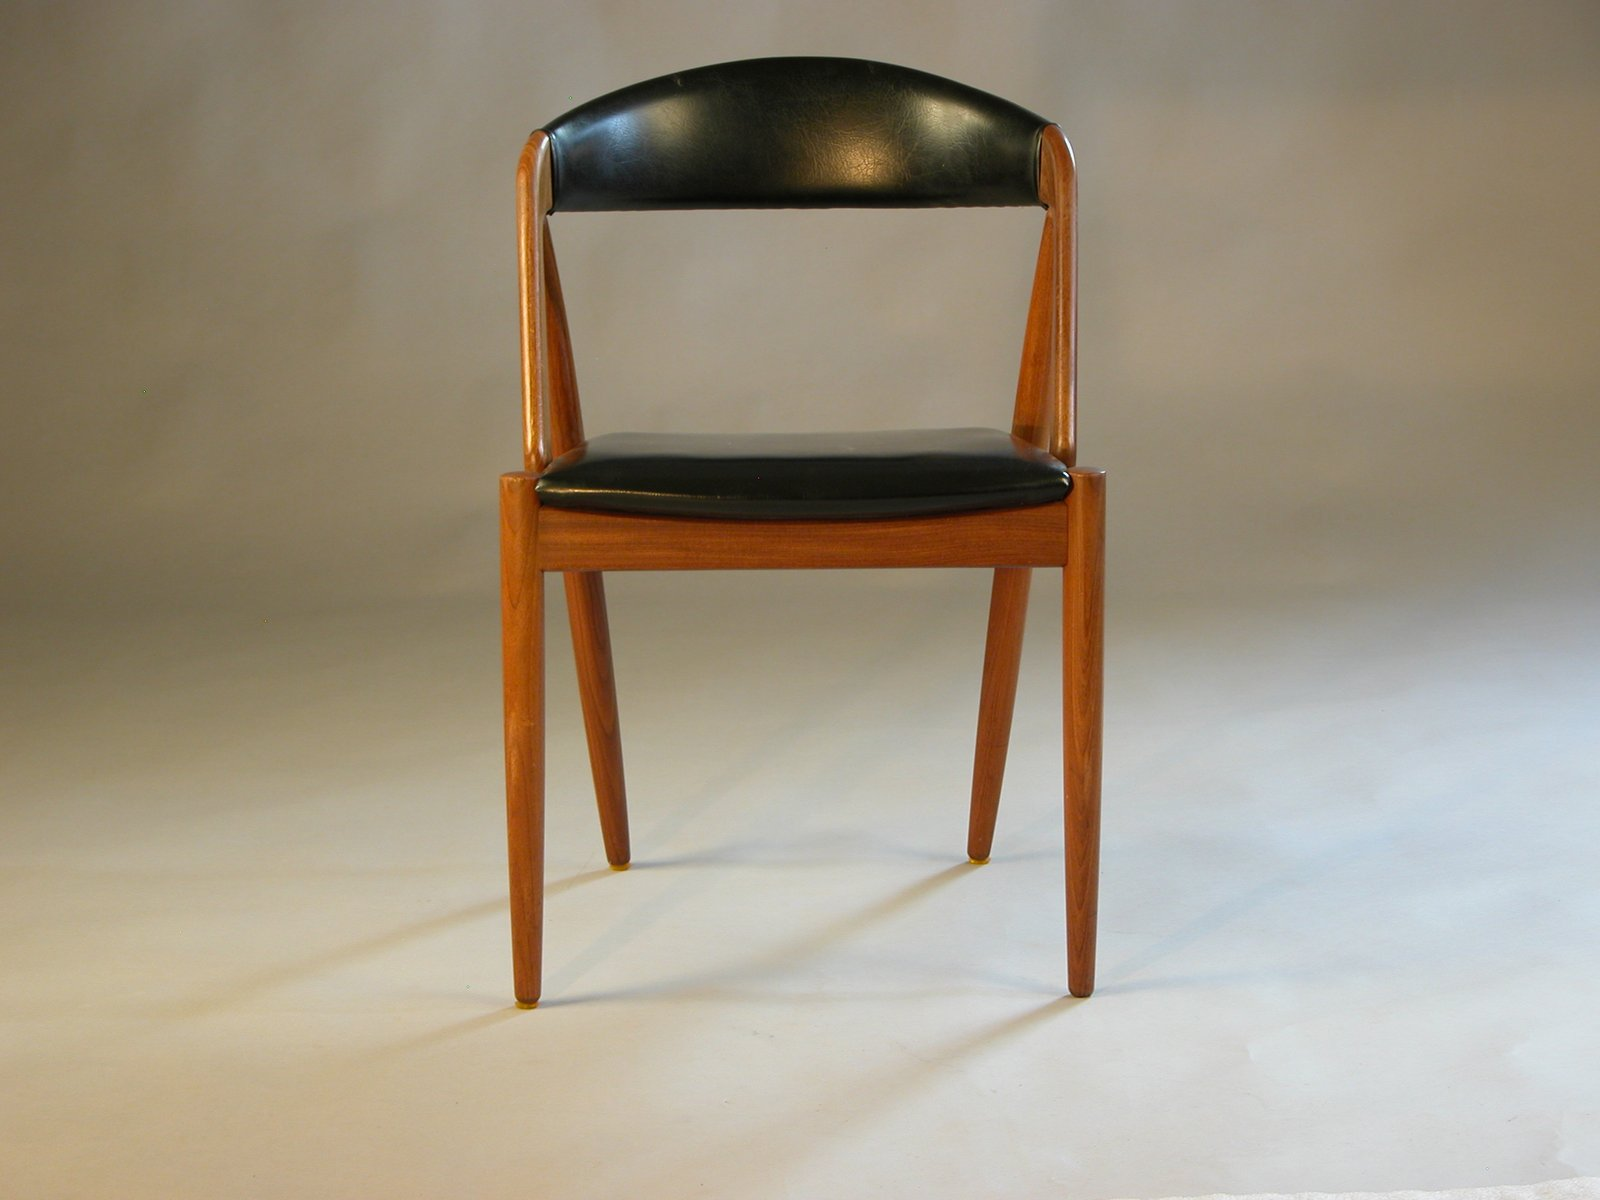 Vintage model 31 dining chair in teak and black leatherette by kai kristiansen for sale at pamono - Kai kristiansen chair ...